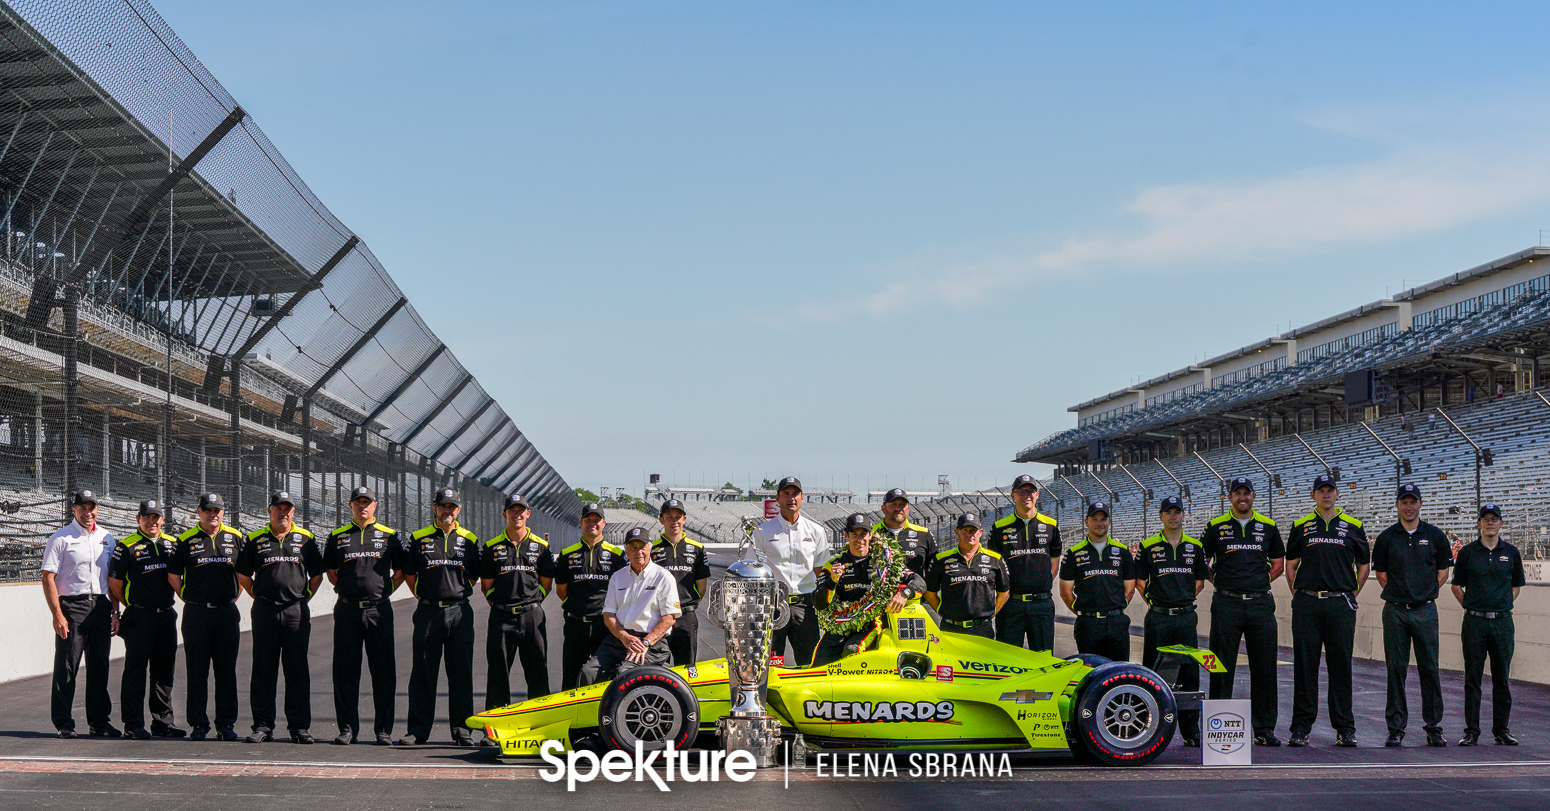 Earchphoto Sports - Team Penske on the yard of bricks